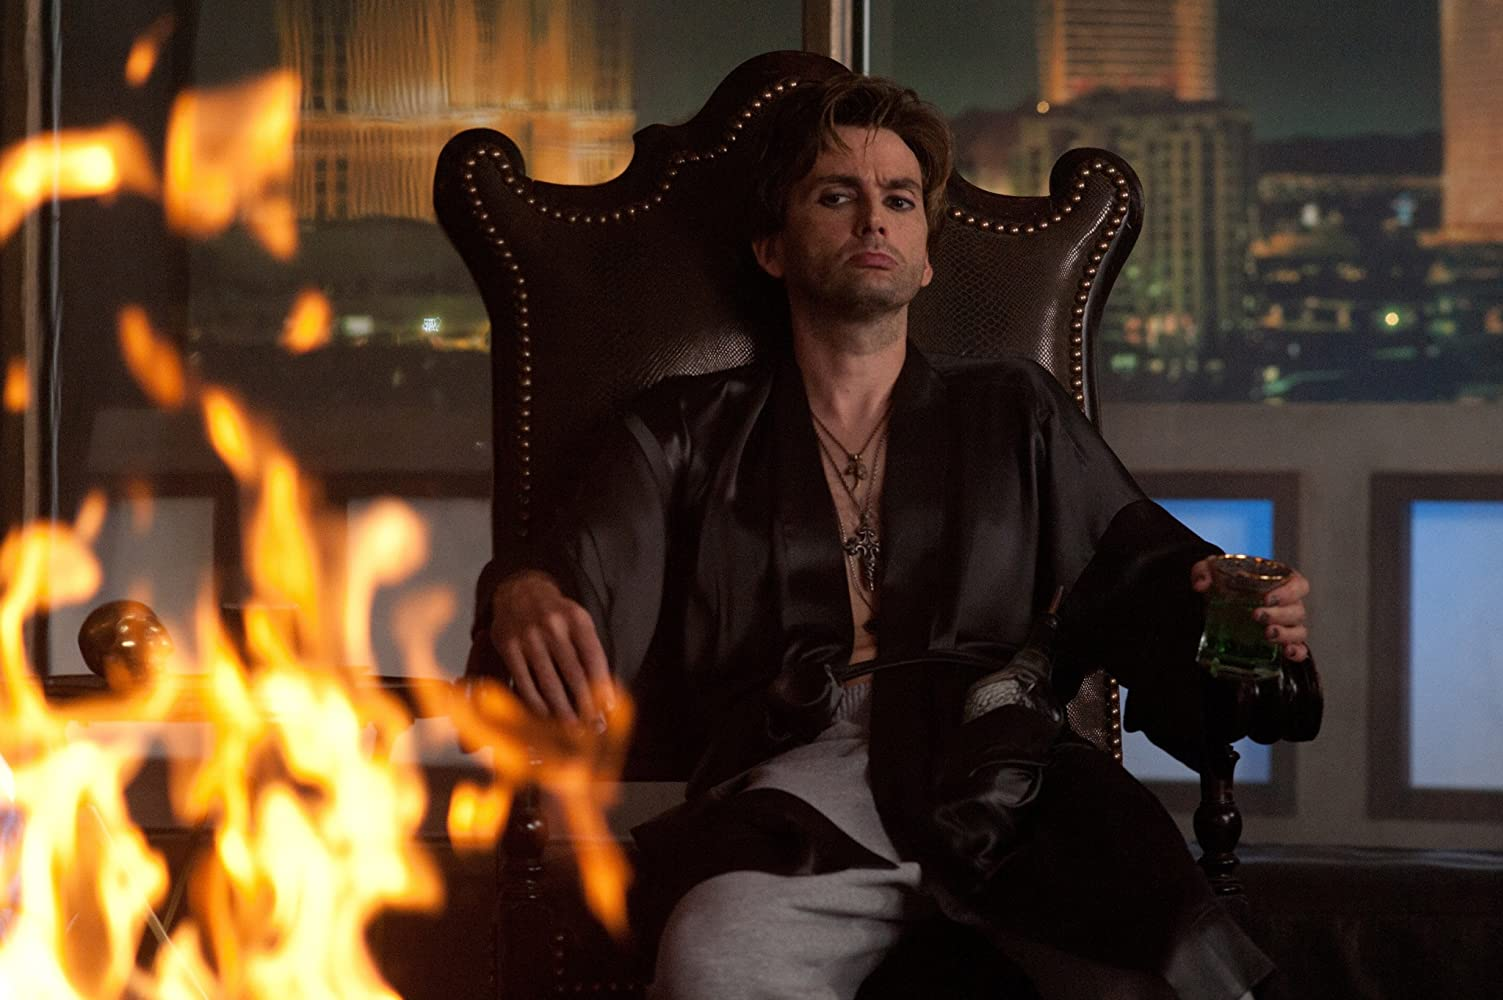 David Tennant in Fright Night (2011)